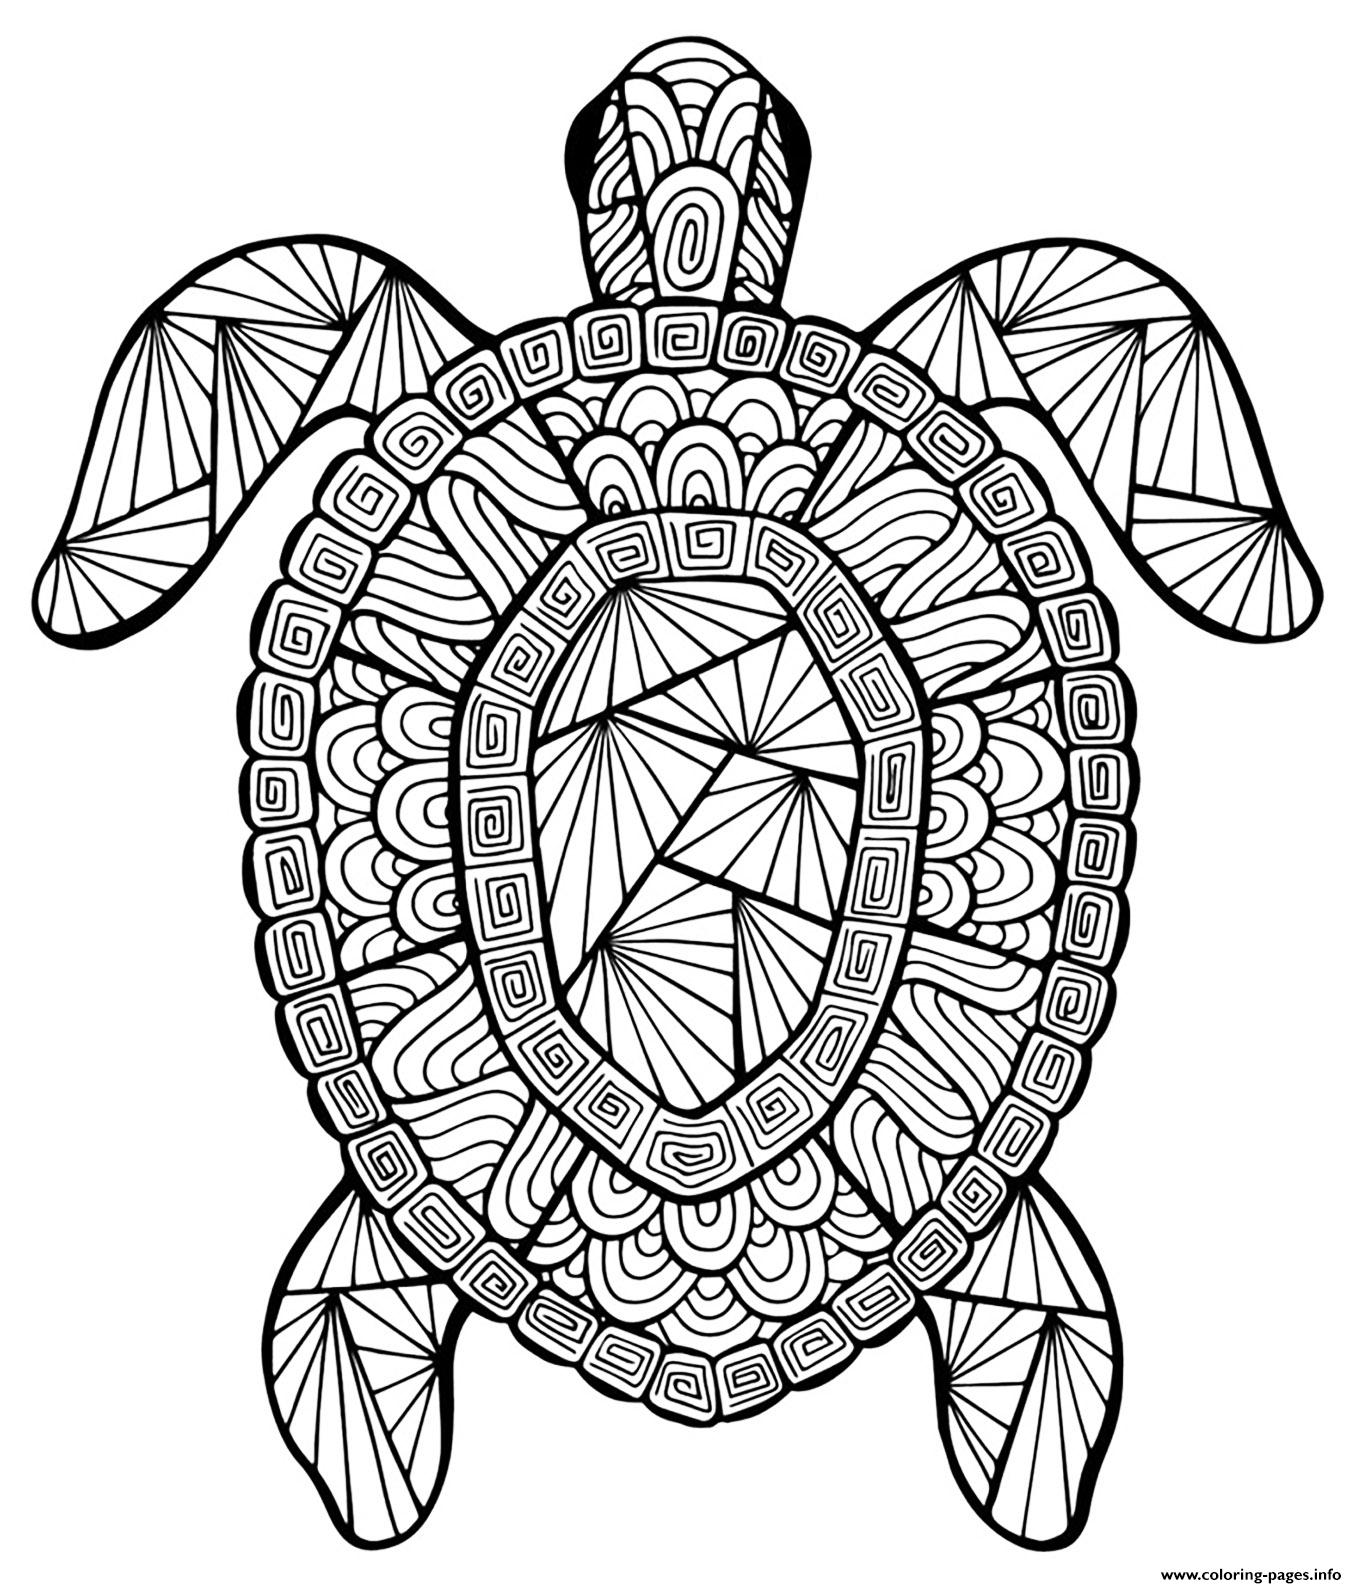 advanced animal coloring pages advanced animal coloring page 25 kidspressmagazinecom coloring advanced animal pages